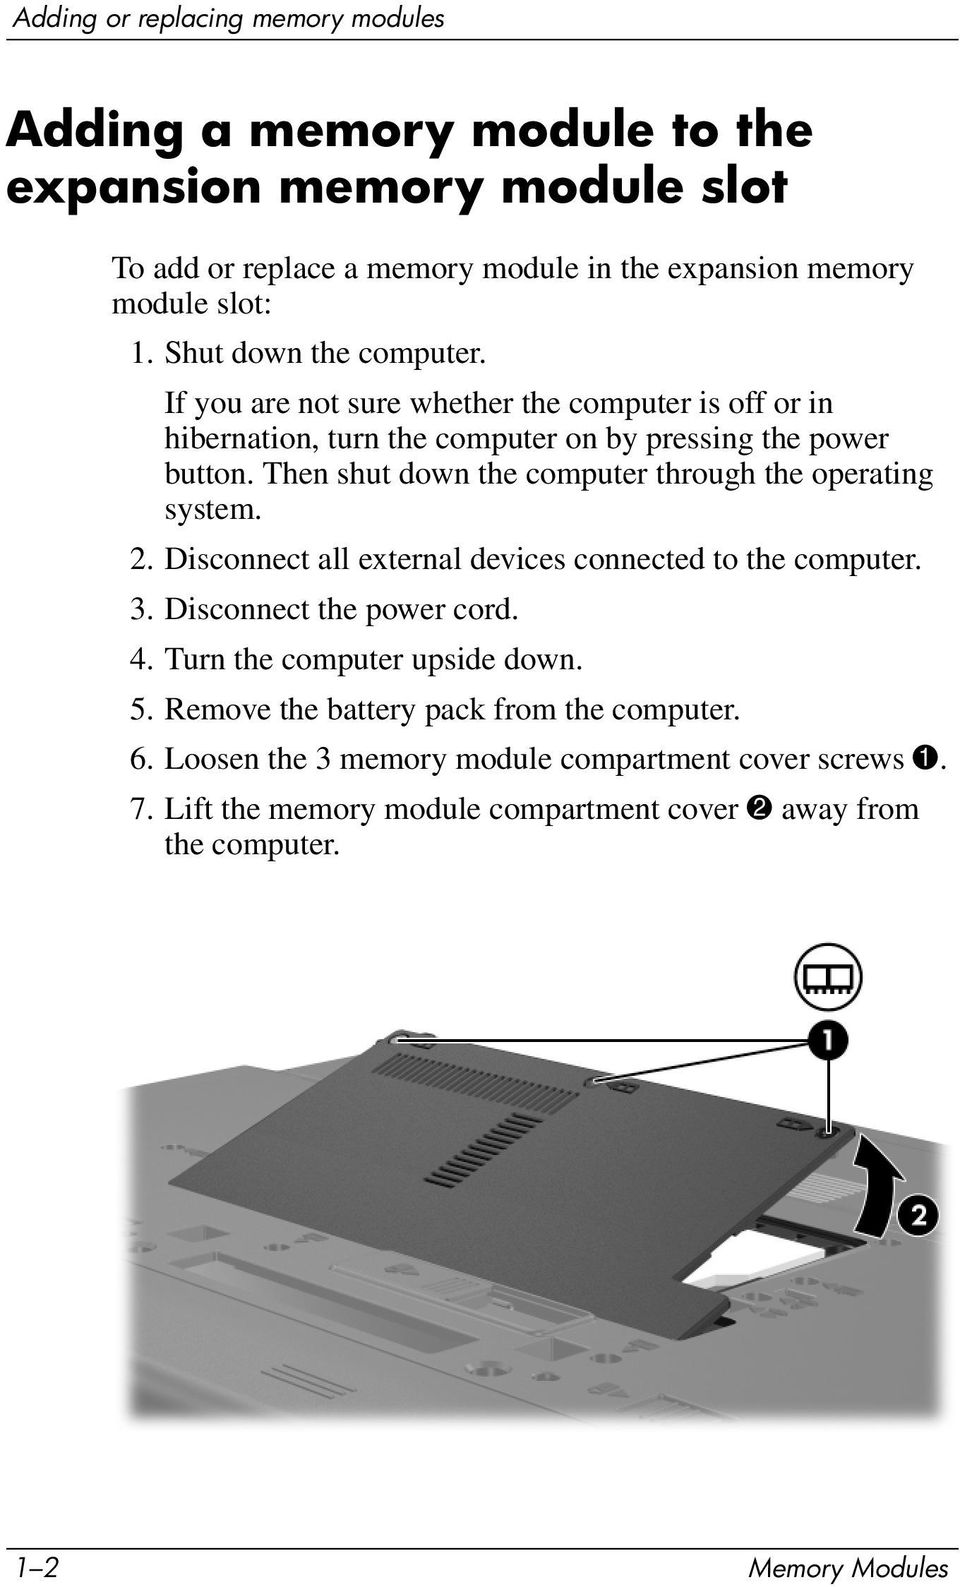 Then shut down the computer through the operating system. 2. Disconnect all external devices connected to the computer. 3. Disconnect the power cord. 4.